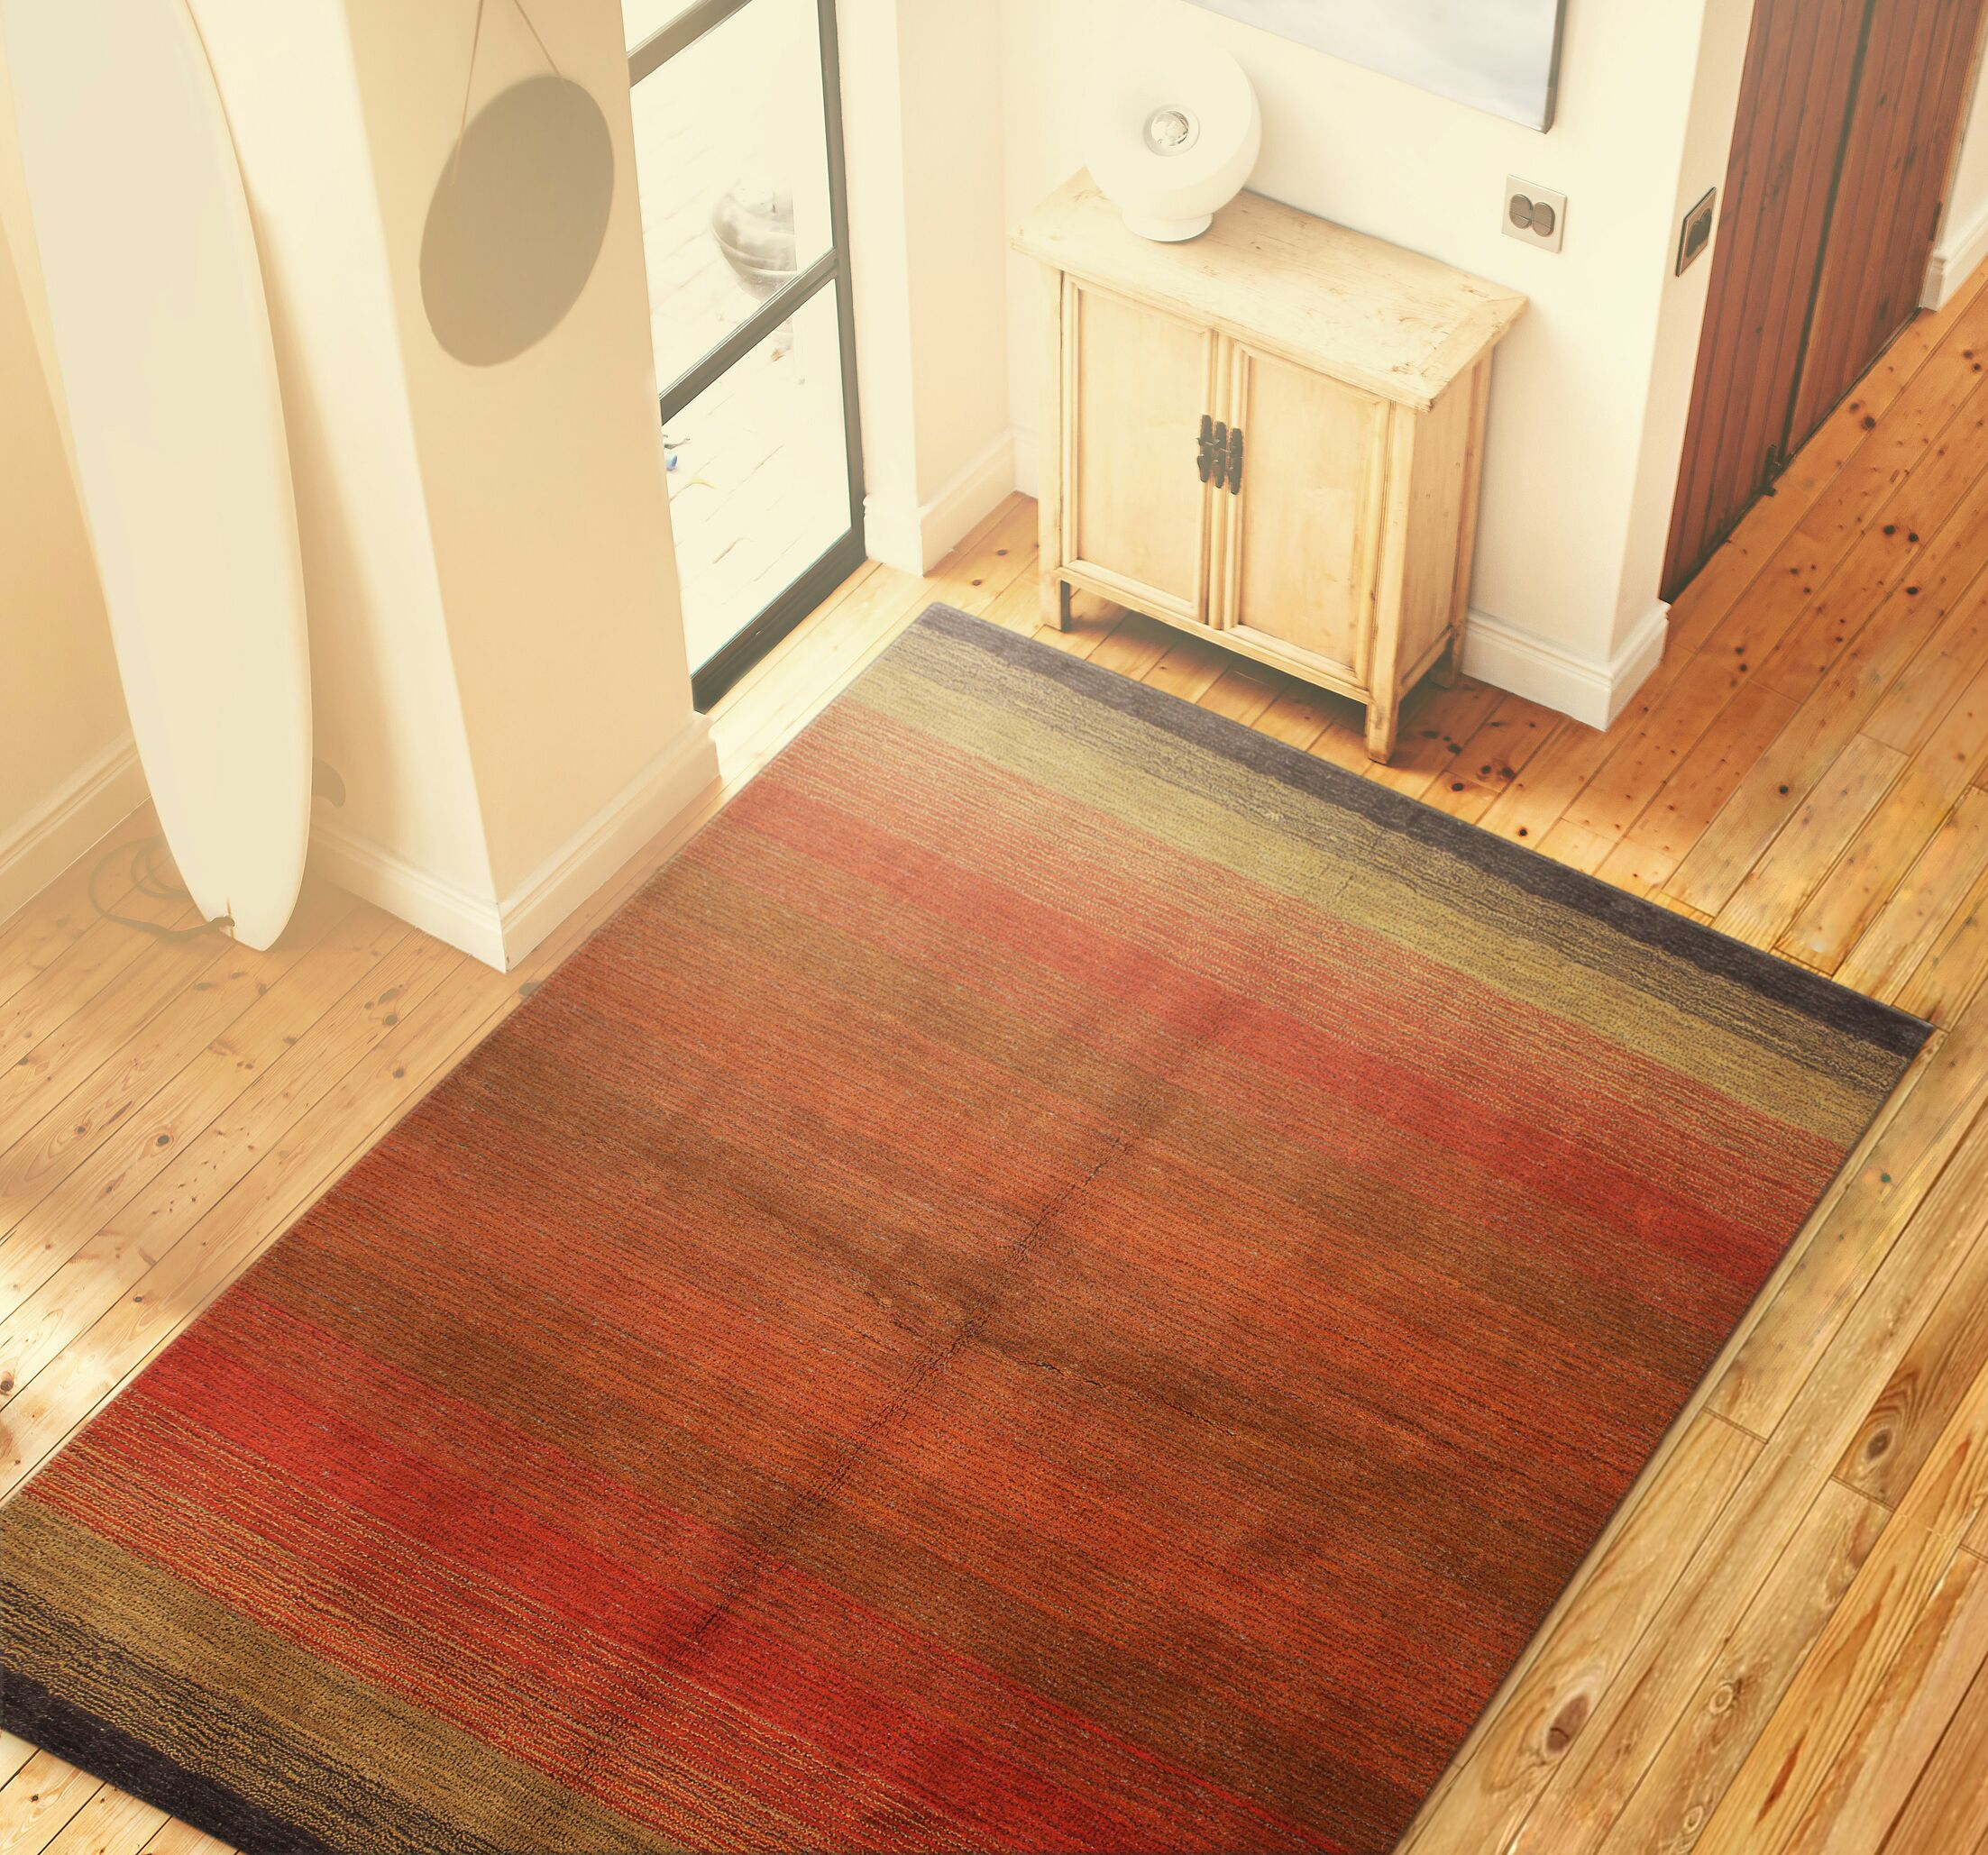 Vauxhall Hand Woven Wool Red Area Rug Rug Size: 7'6